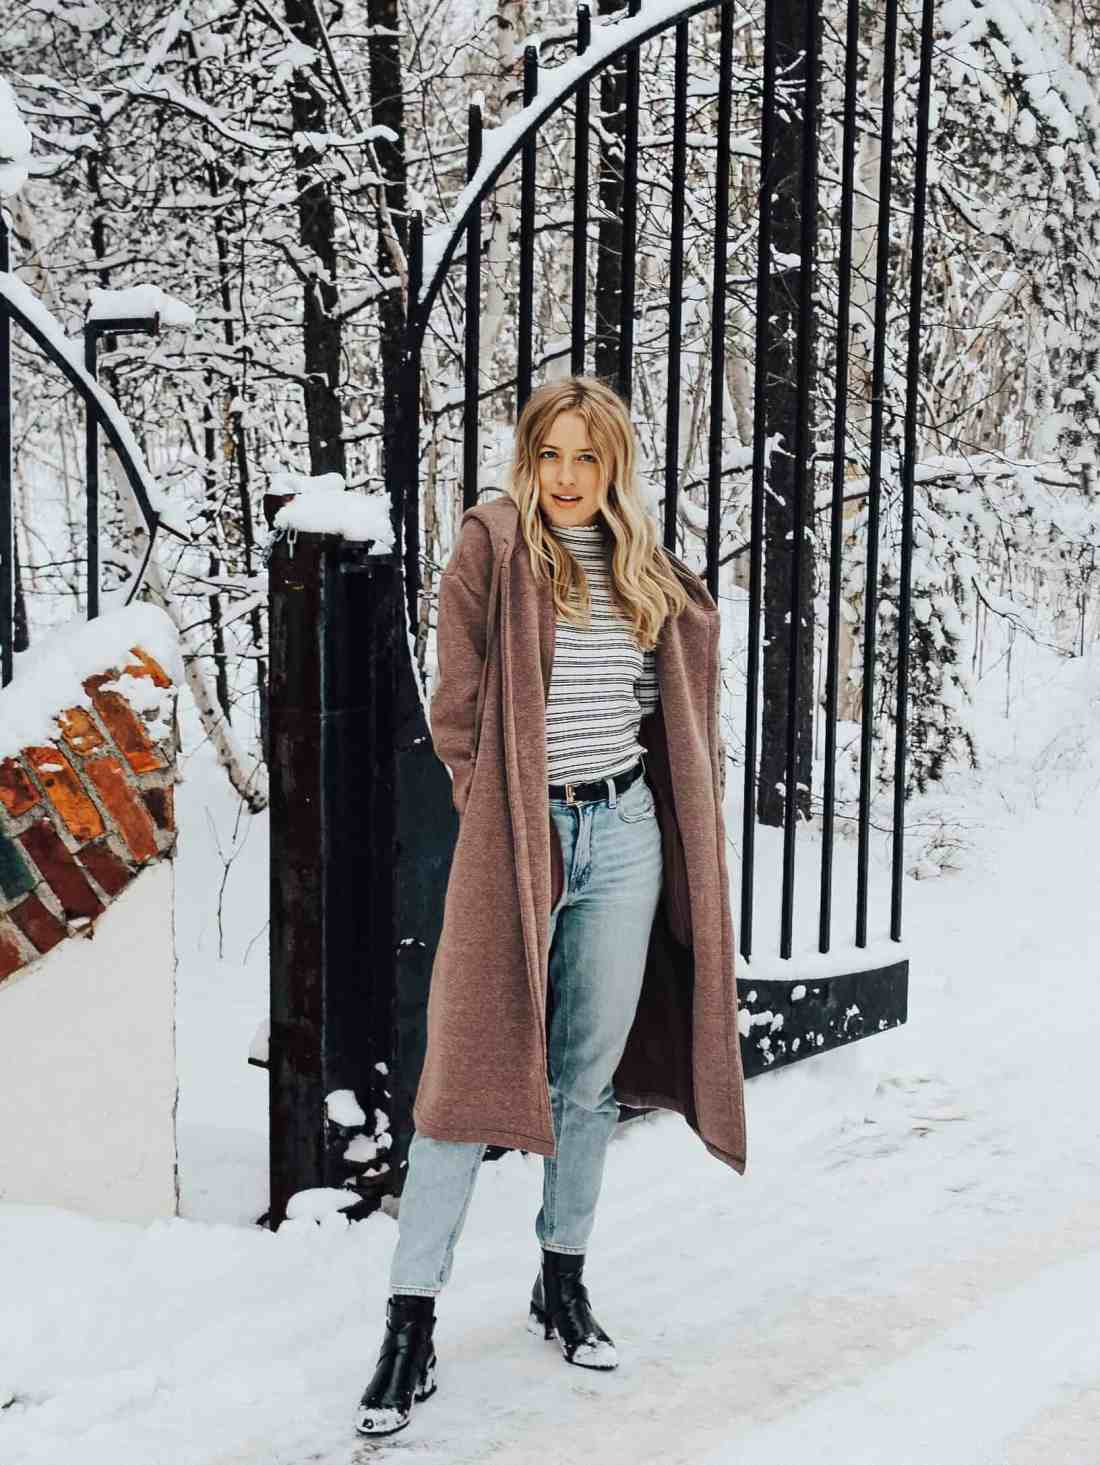 Winter Coats - The Coolest Winter Coats for Winter 2019. Featuring the best current coat trends such as faux fur, long coats, pops of color, & more!